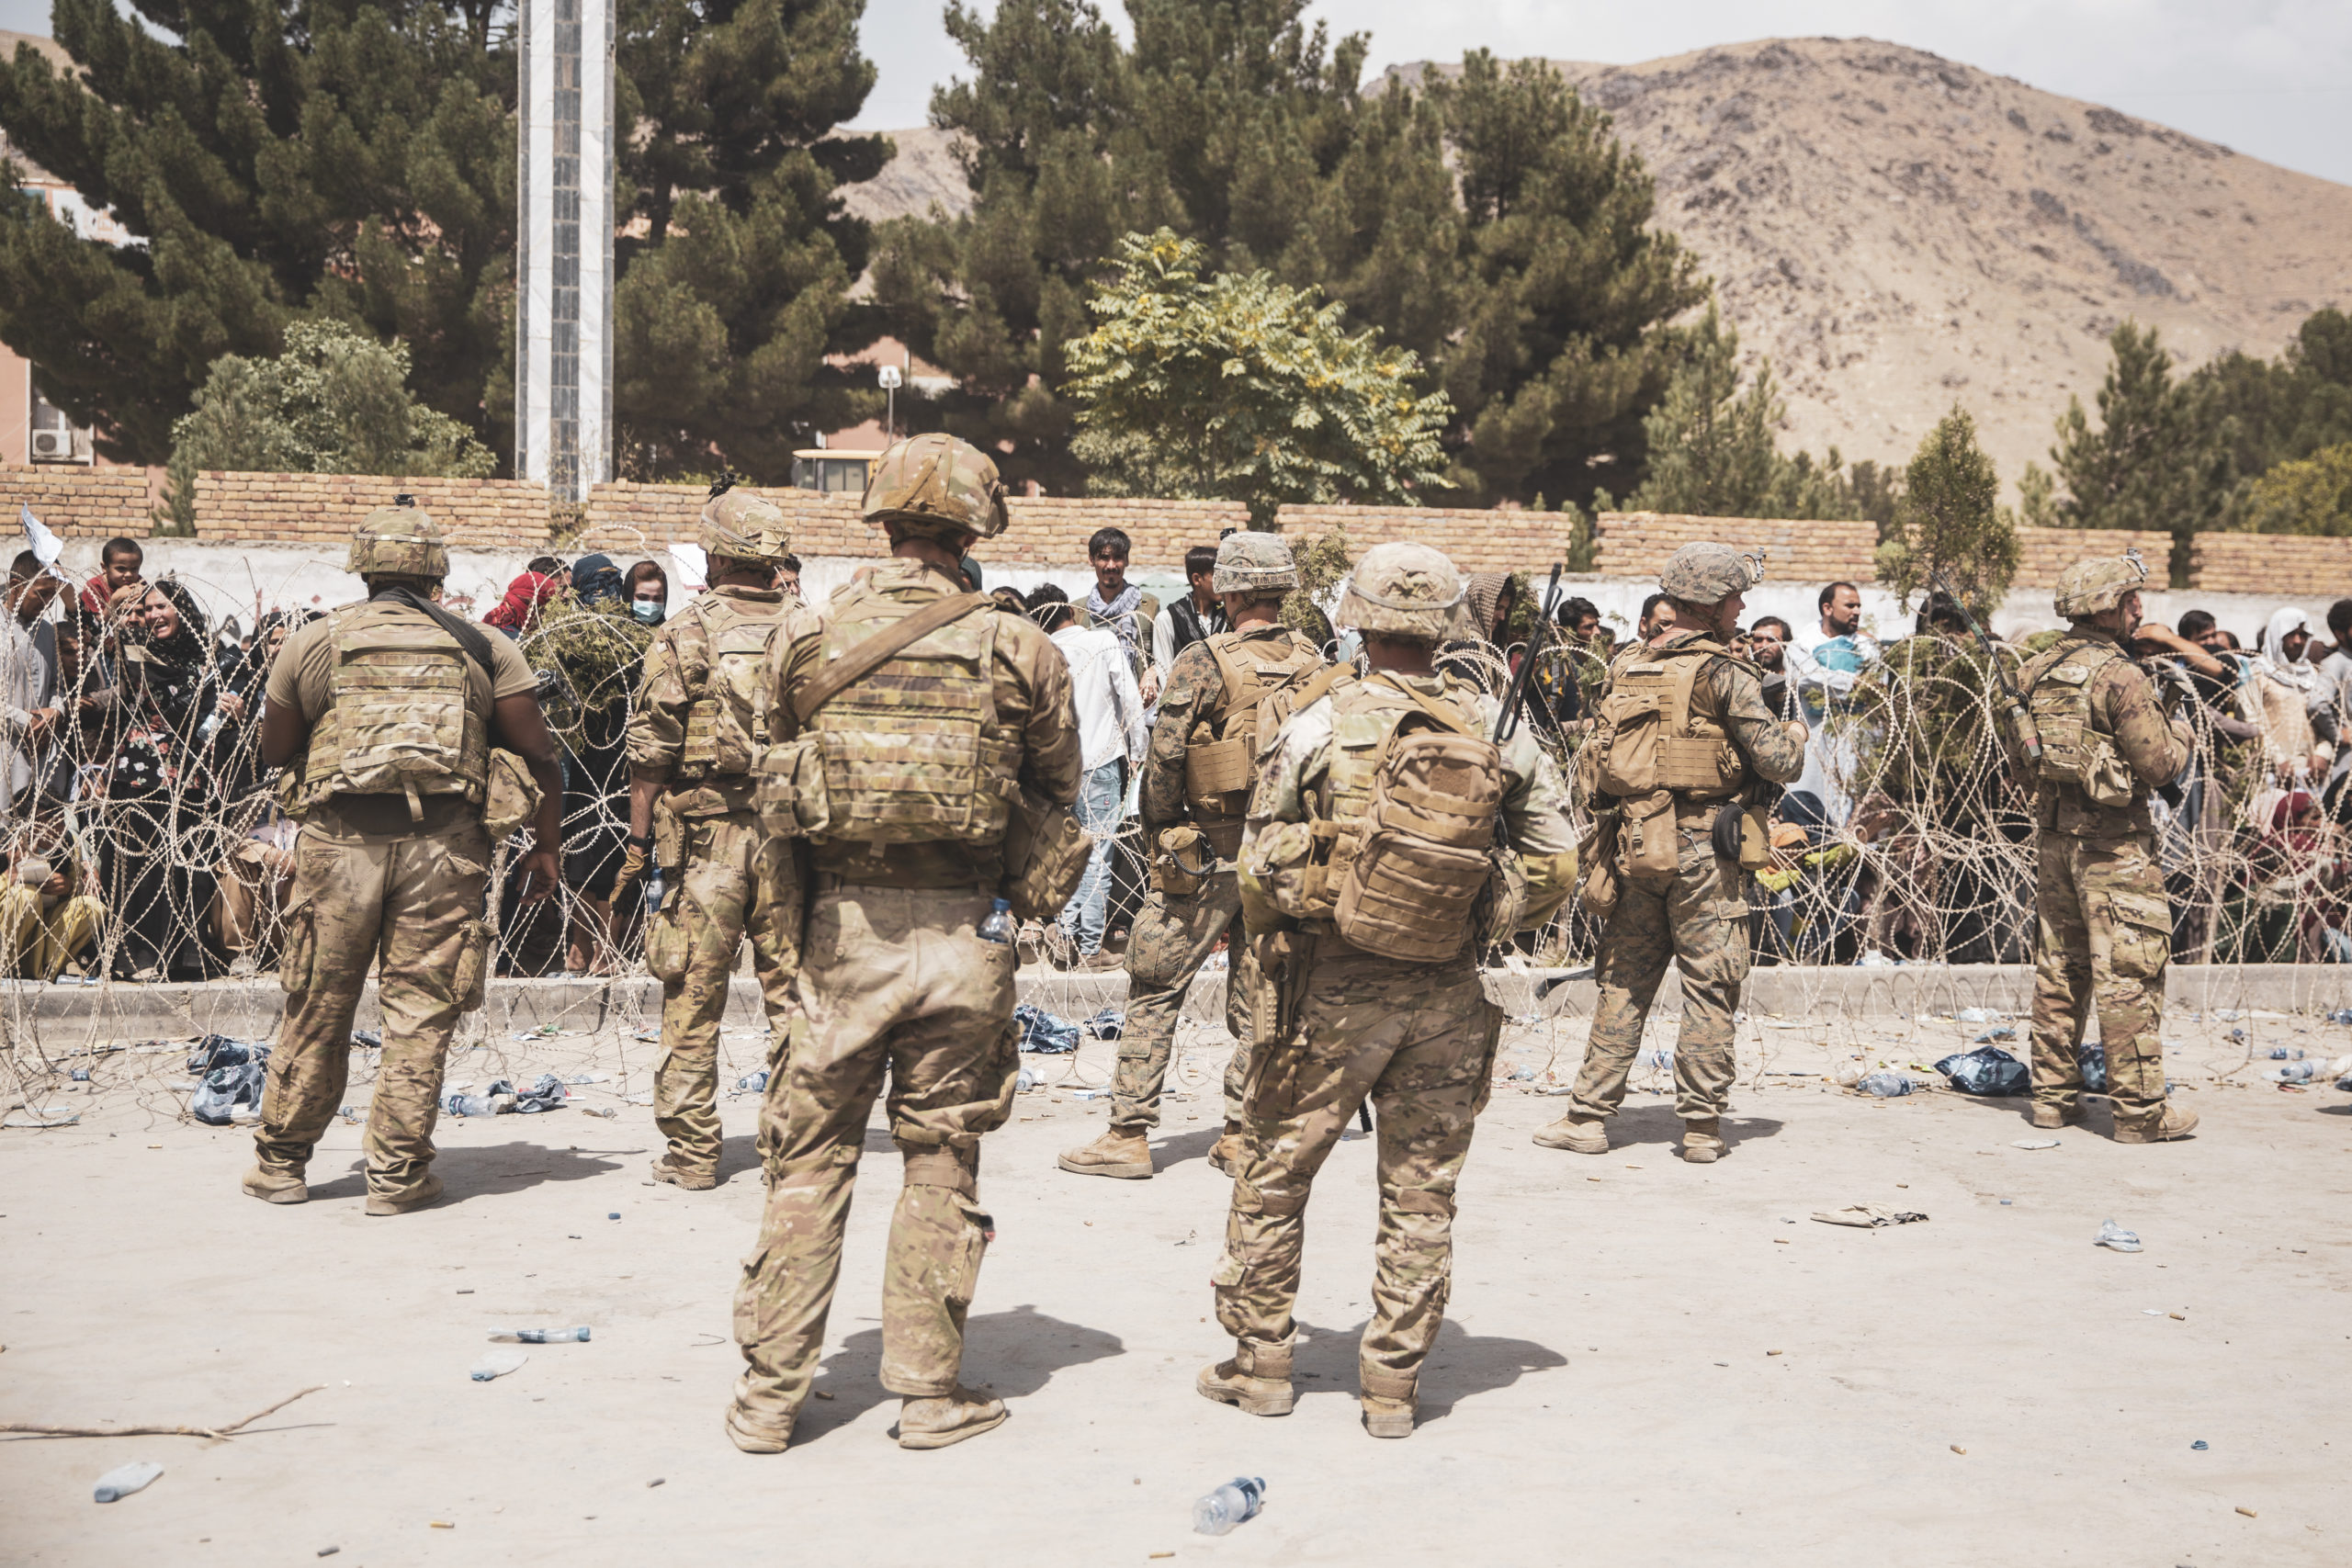 U.S. troops assist with security at an evacuation control checkpoint during at Hamid Karzai International Airport on Aug. 19 in Kabul, Afghanistan. (Staff Sgt. Victor Mancilla/U.S. Marine Corps via Getty Images)